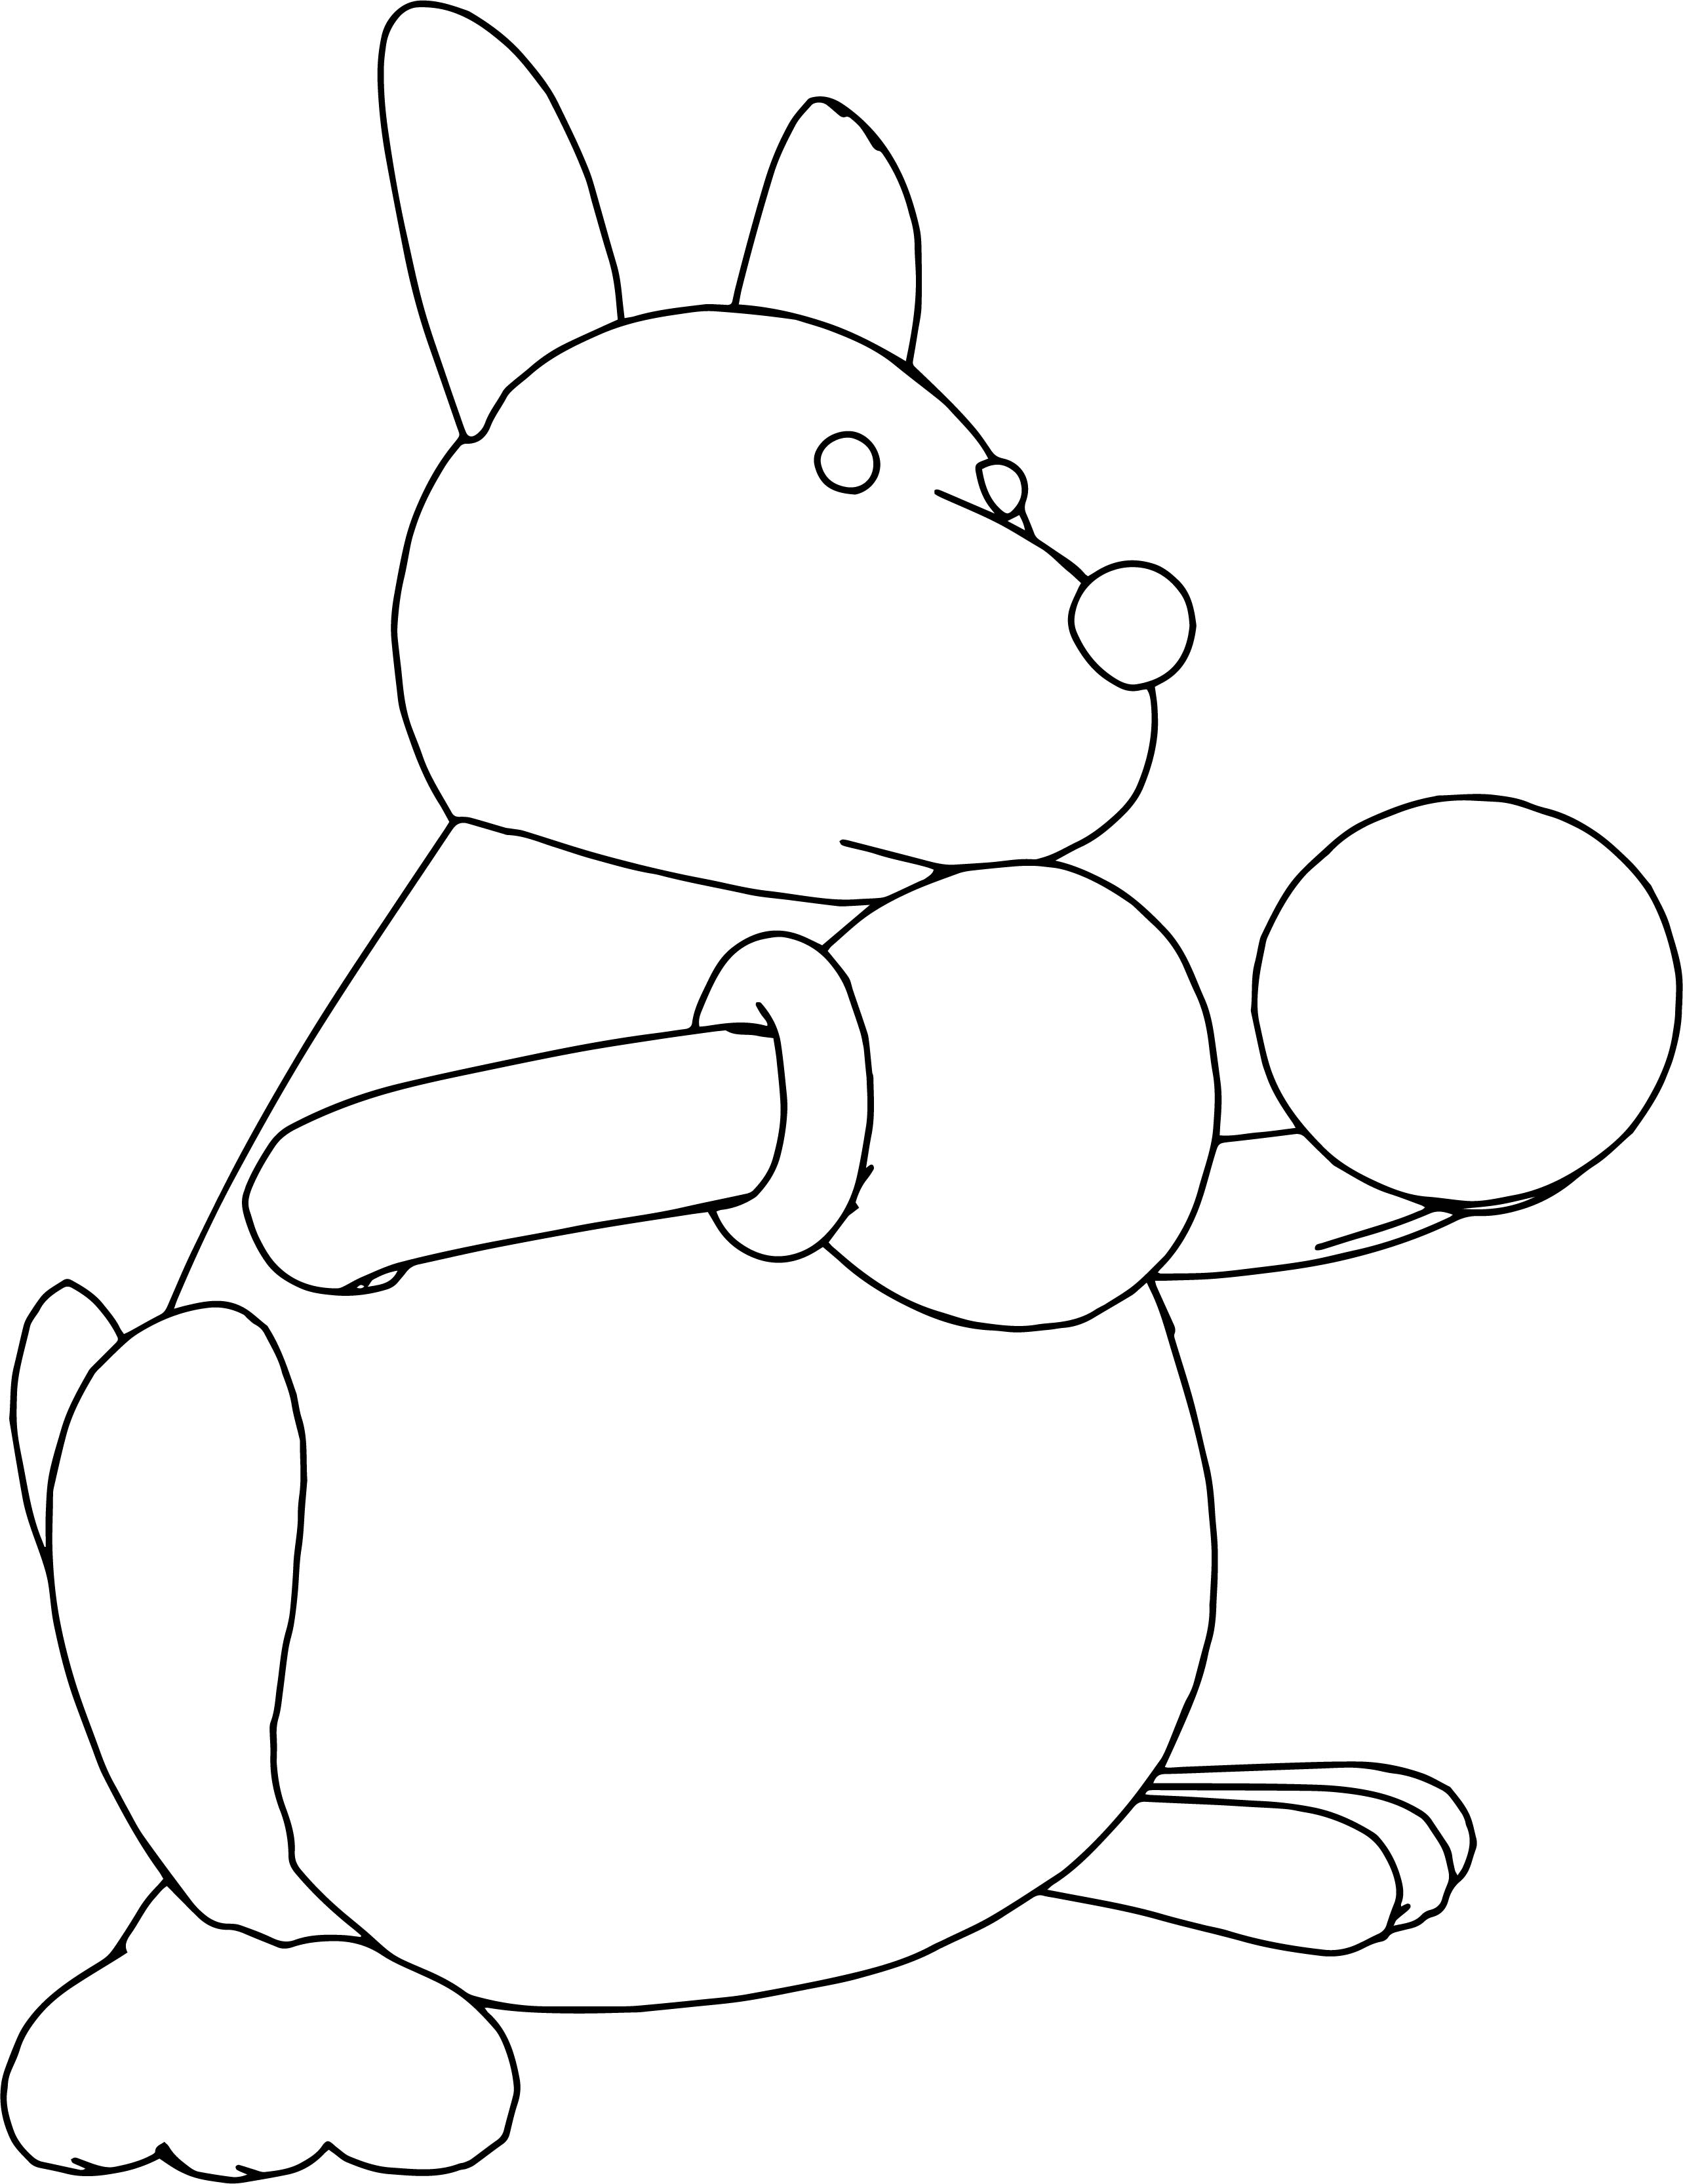 Boxing Kangaroo Coloring Page Sheet Line Drawing